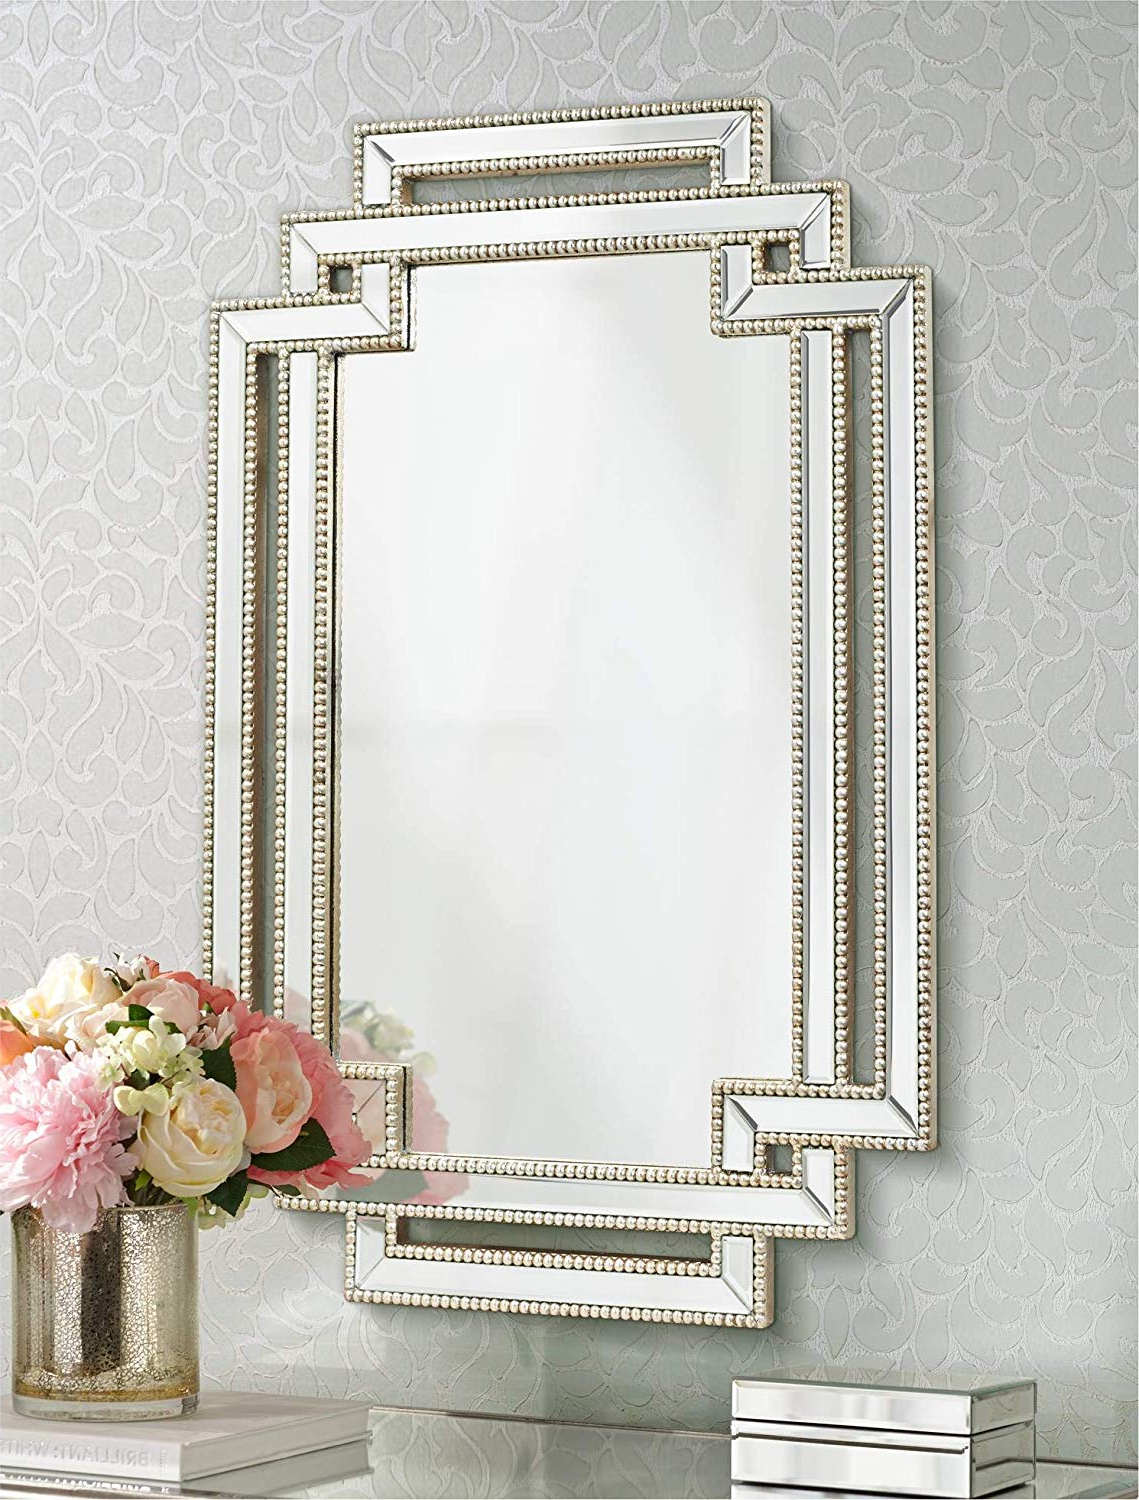 "Silver Beaded Wall Mirrors For Most Popular Possini Euro Design Erte Openwork Silver Beaded 27"" X 39 1/2"" Wall Mirror (View 10 of 20)"